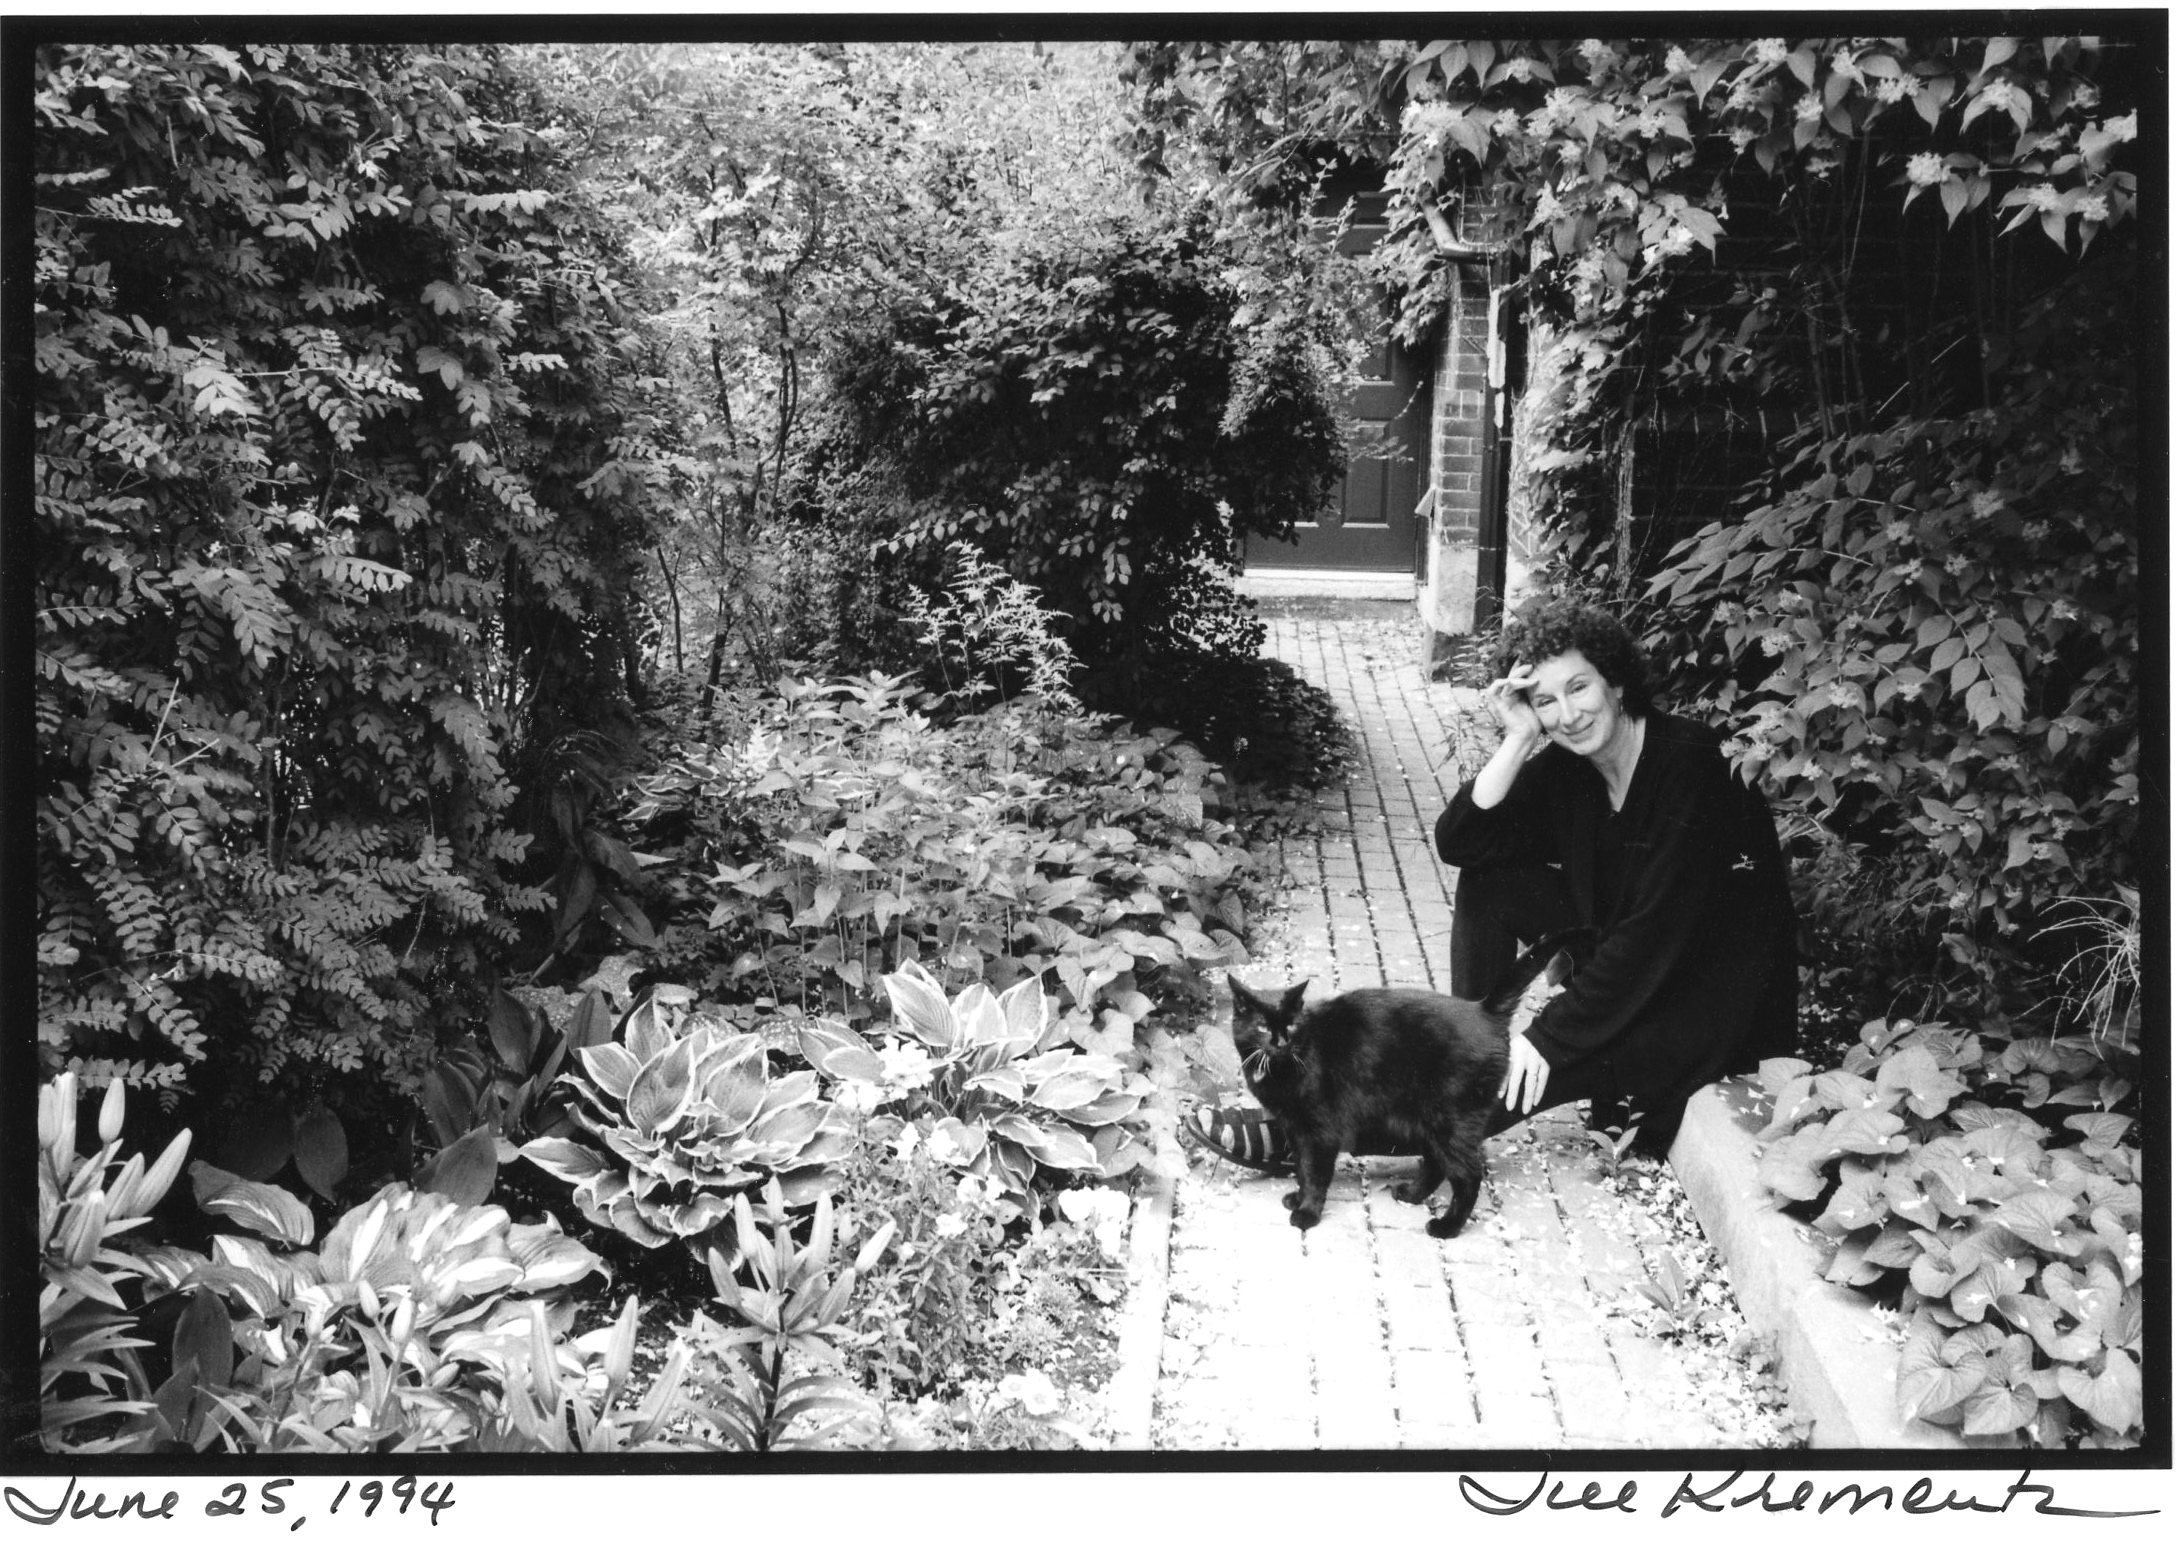 Margaret Atwood, an avid horticulturist, with her cat Blackie in Toronto, June 25, 1994, photographed by Jill Krementz.